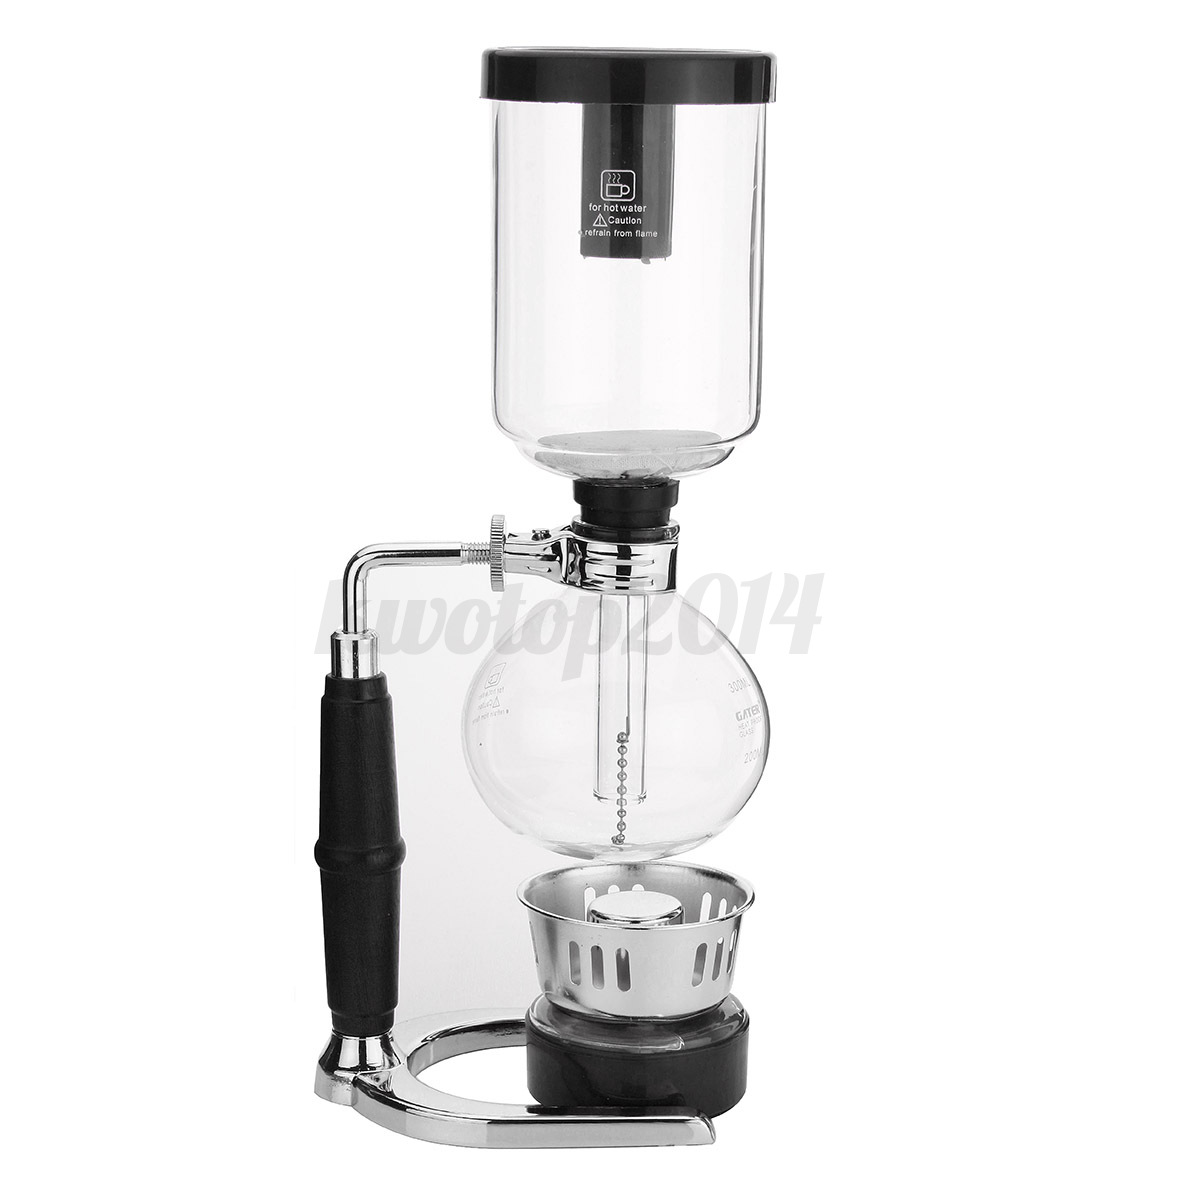 1pcs Cold Drip Filter Water Syphon Coffee Maker For 150ml Home Electric Detail Image